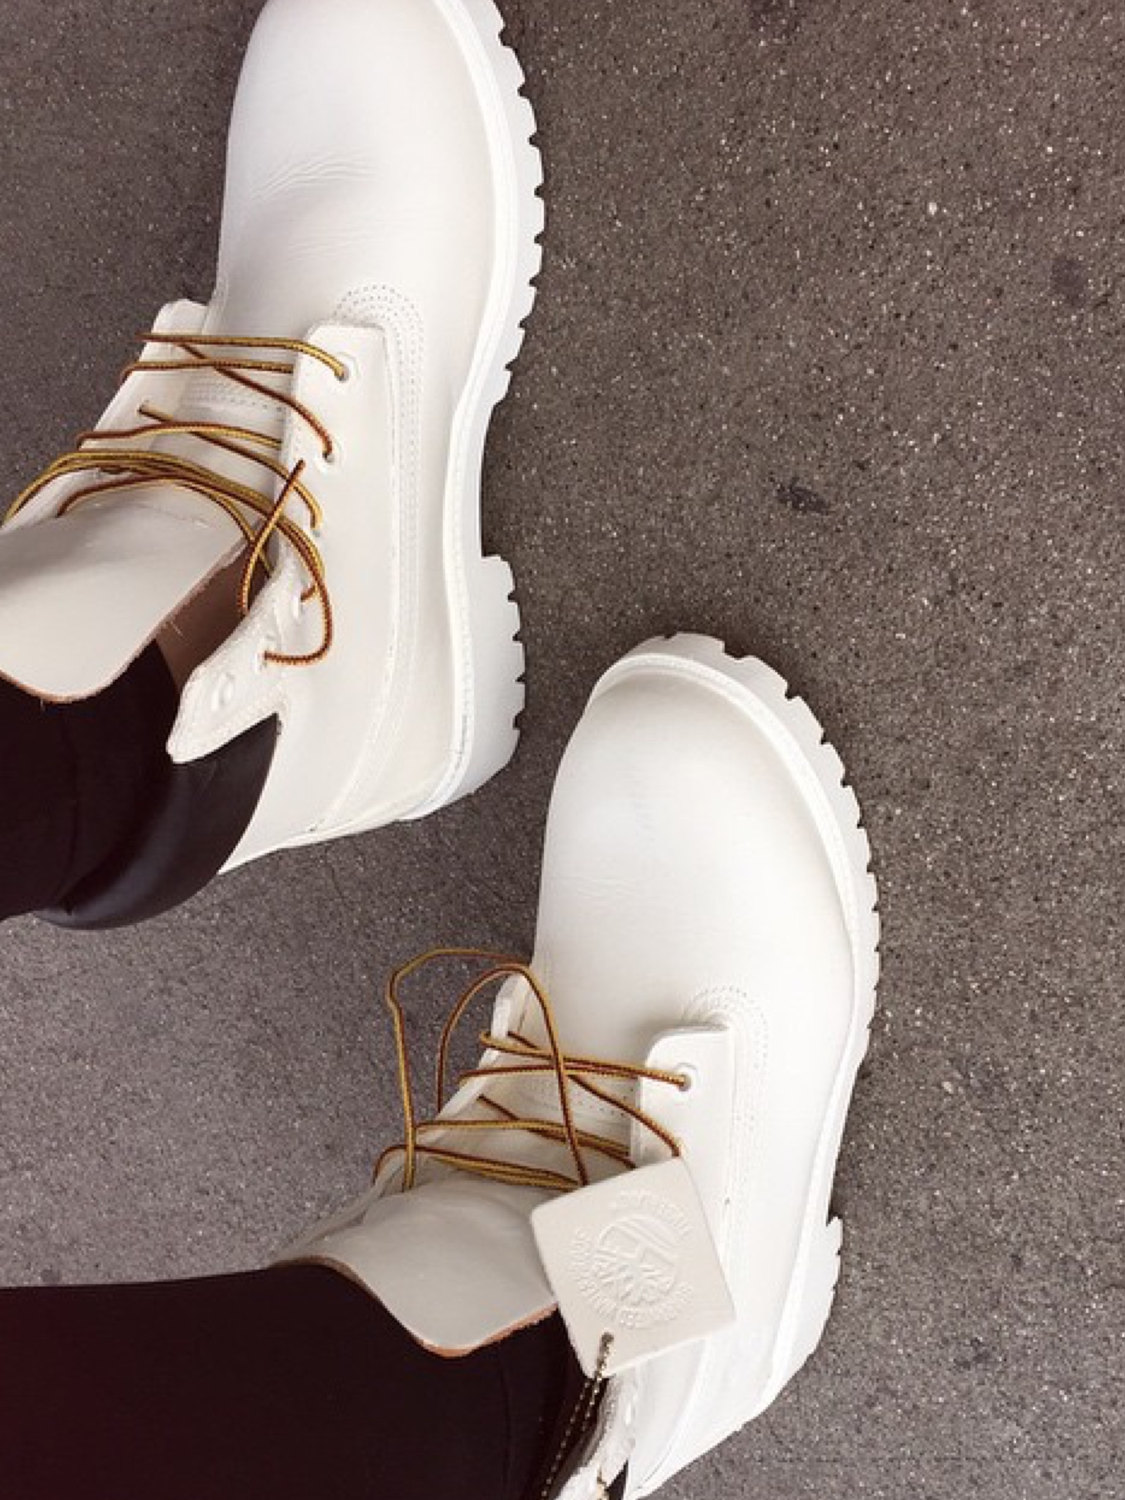 all white custom timberland boots